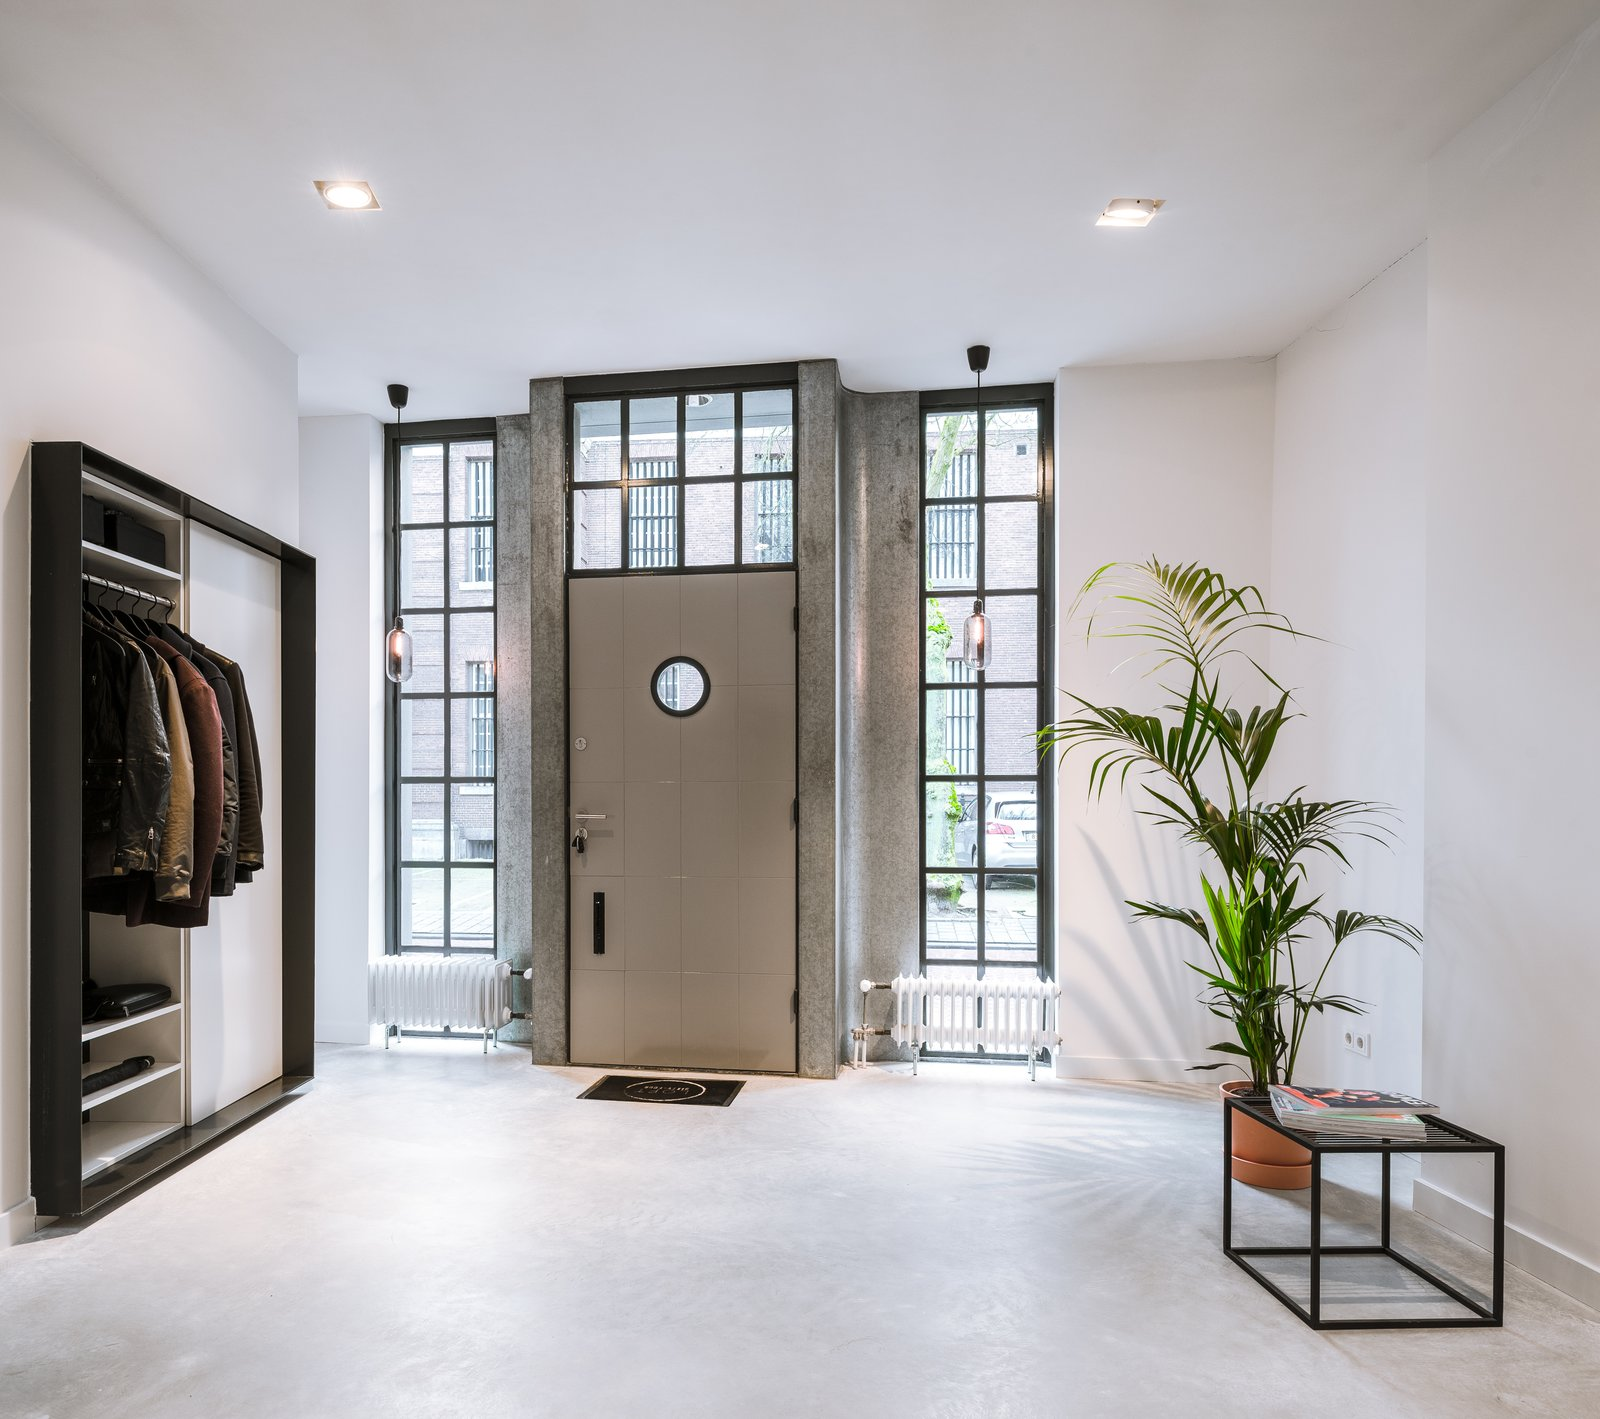 Glass windows help connect the entrance foyer to the street outdoors. Tagged: Doors, Metal, Swing, and Exterior.  Best Doors Photos from A 19th-Century Dutch Workshop Is Now a Stunning, Spacious Loft